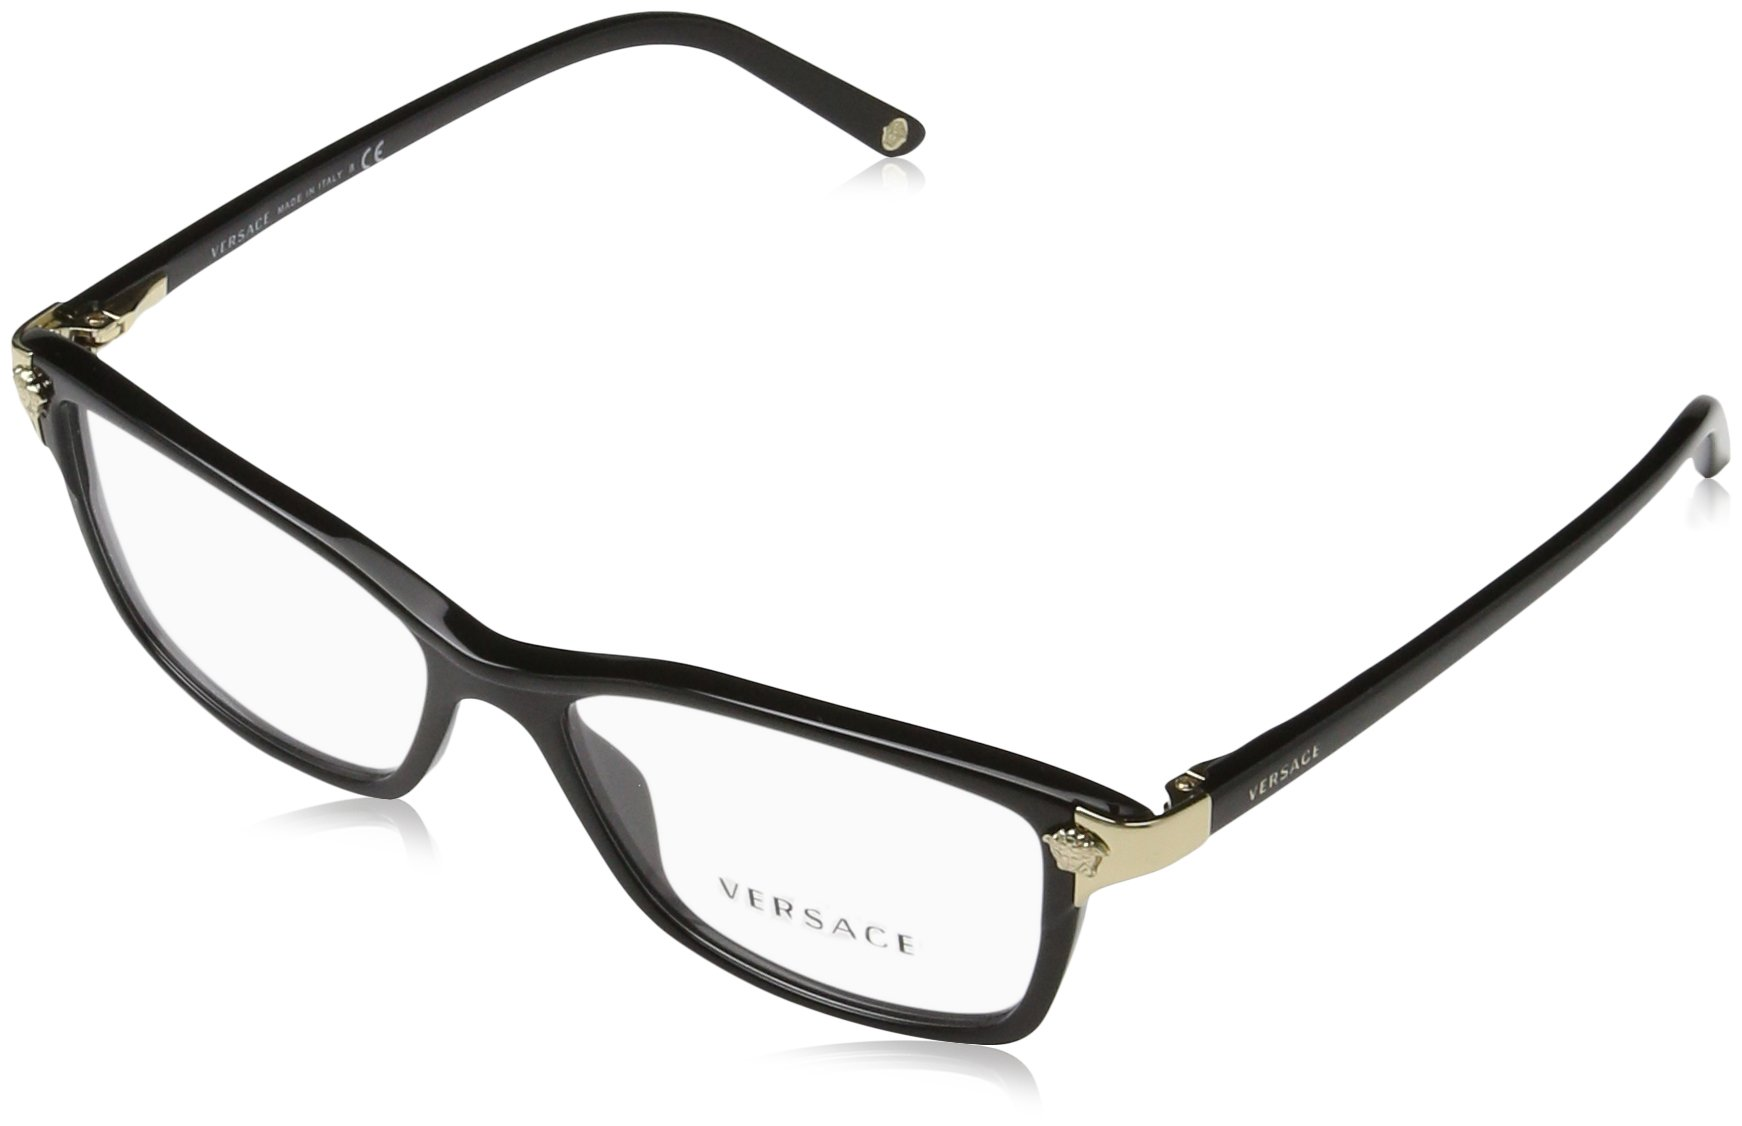 Versace Women's VE3156 Eyeglasses 53mm by Versace